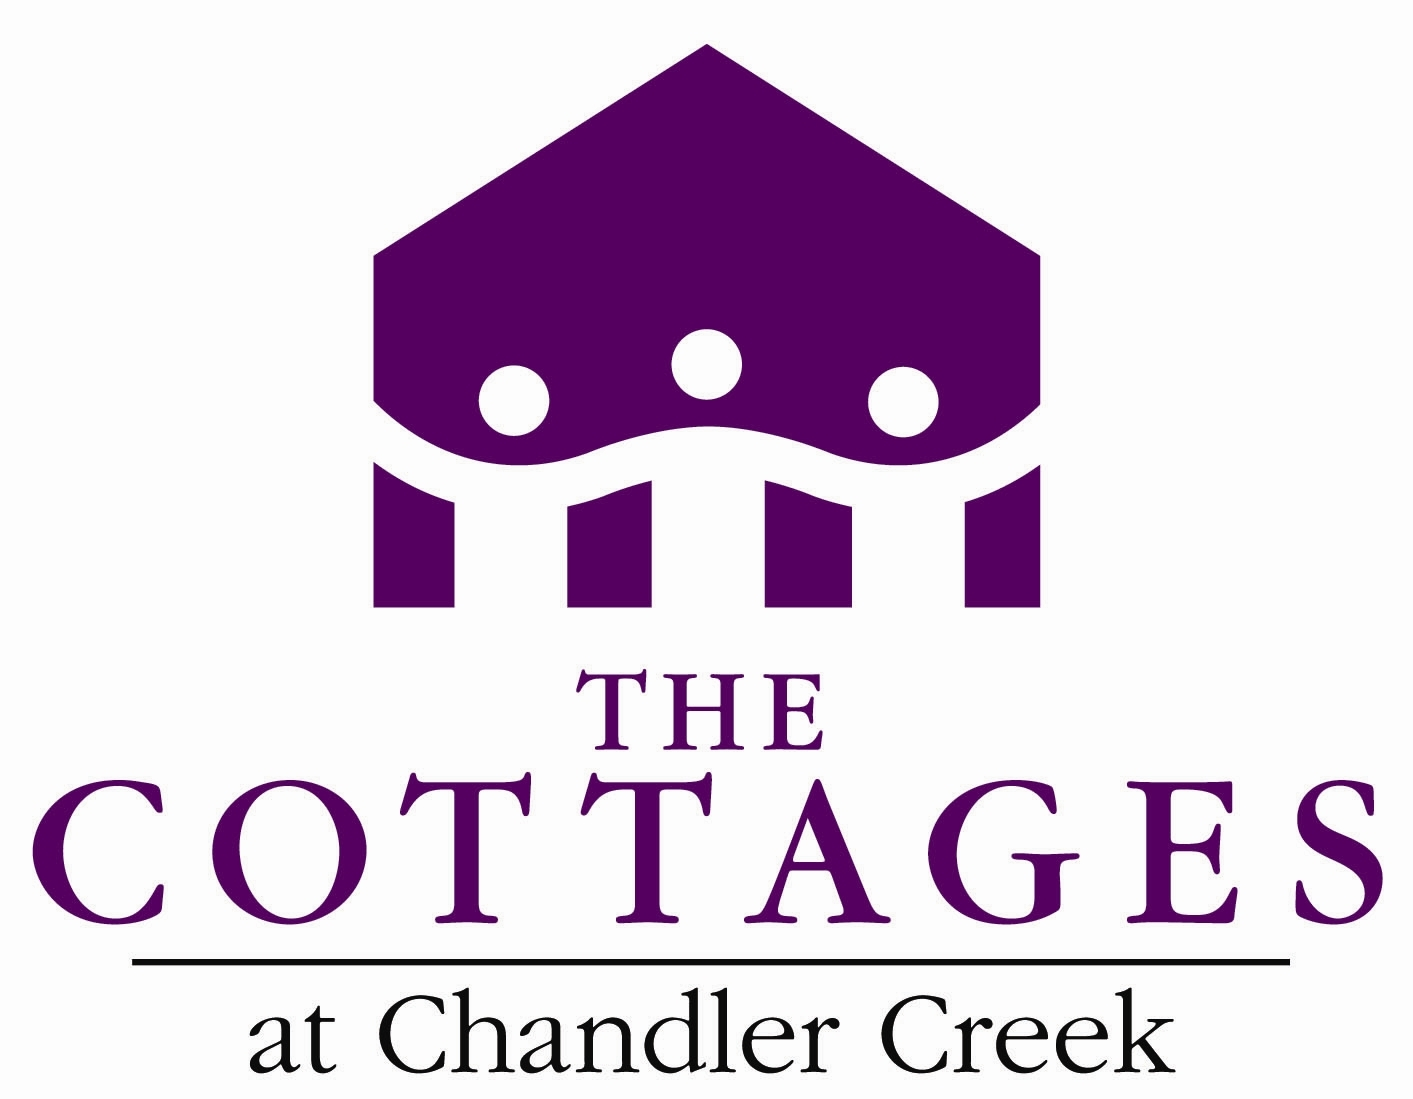 Cottages at Chandler Creek